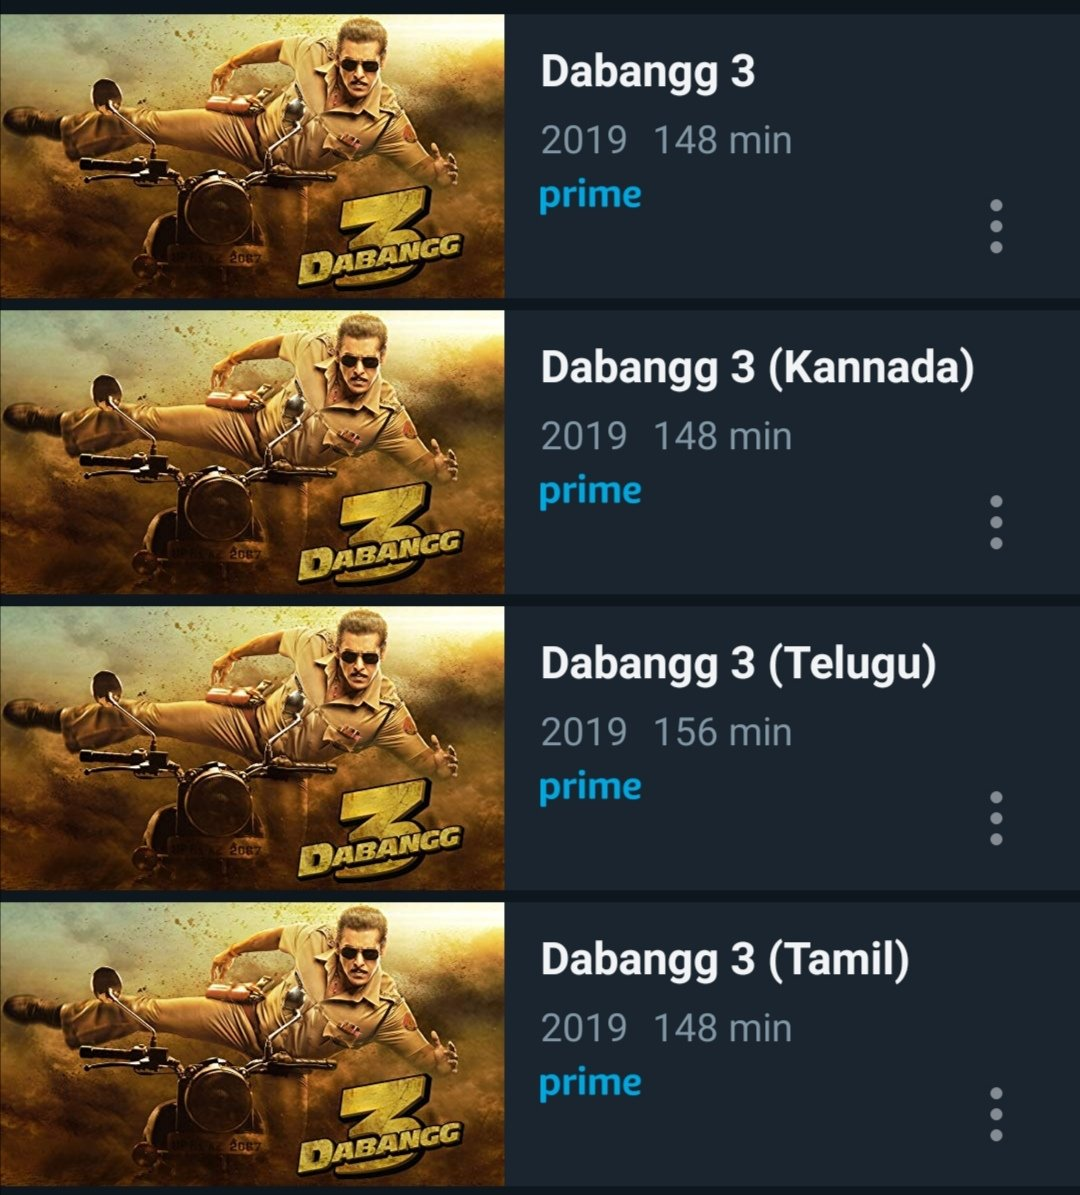 #DABANGG3 (2019) #Tamil #Telugu #Hindi #Kannada Now Streaming on @PrimeVideoIN  Follow 👉 @Thalapathysiv08 for OTT Updates 💥 💥 💥  #Master #MasterSingle #MasterSingleTrack #OruKuttiKathai #KuttiKathai #KuttyStory #SooraraiPottru #Karnan #Darbar #Pattas #F9